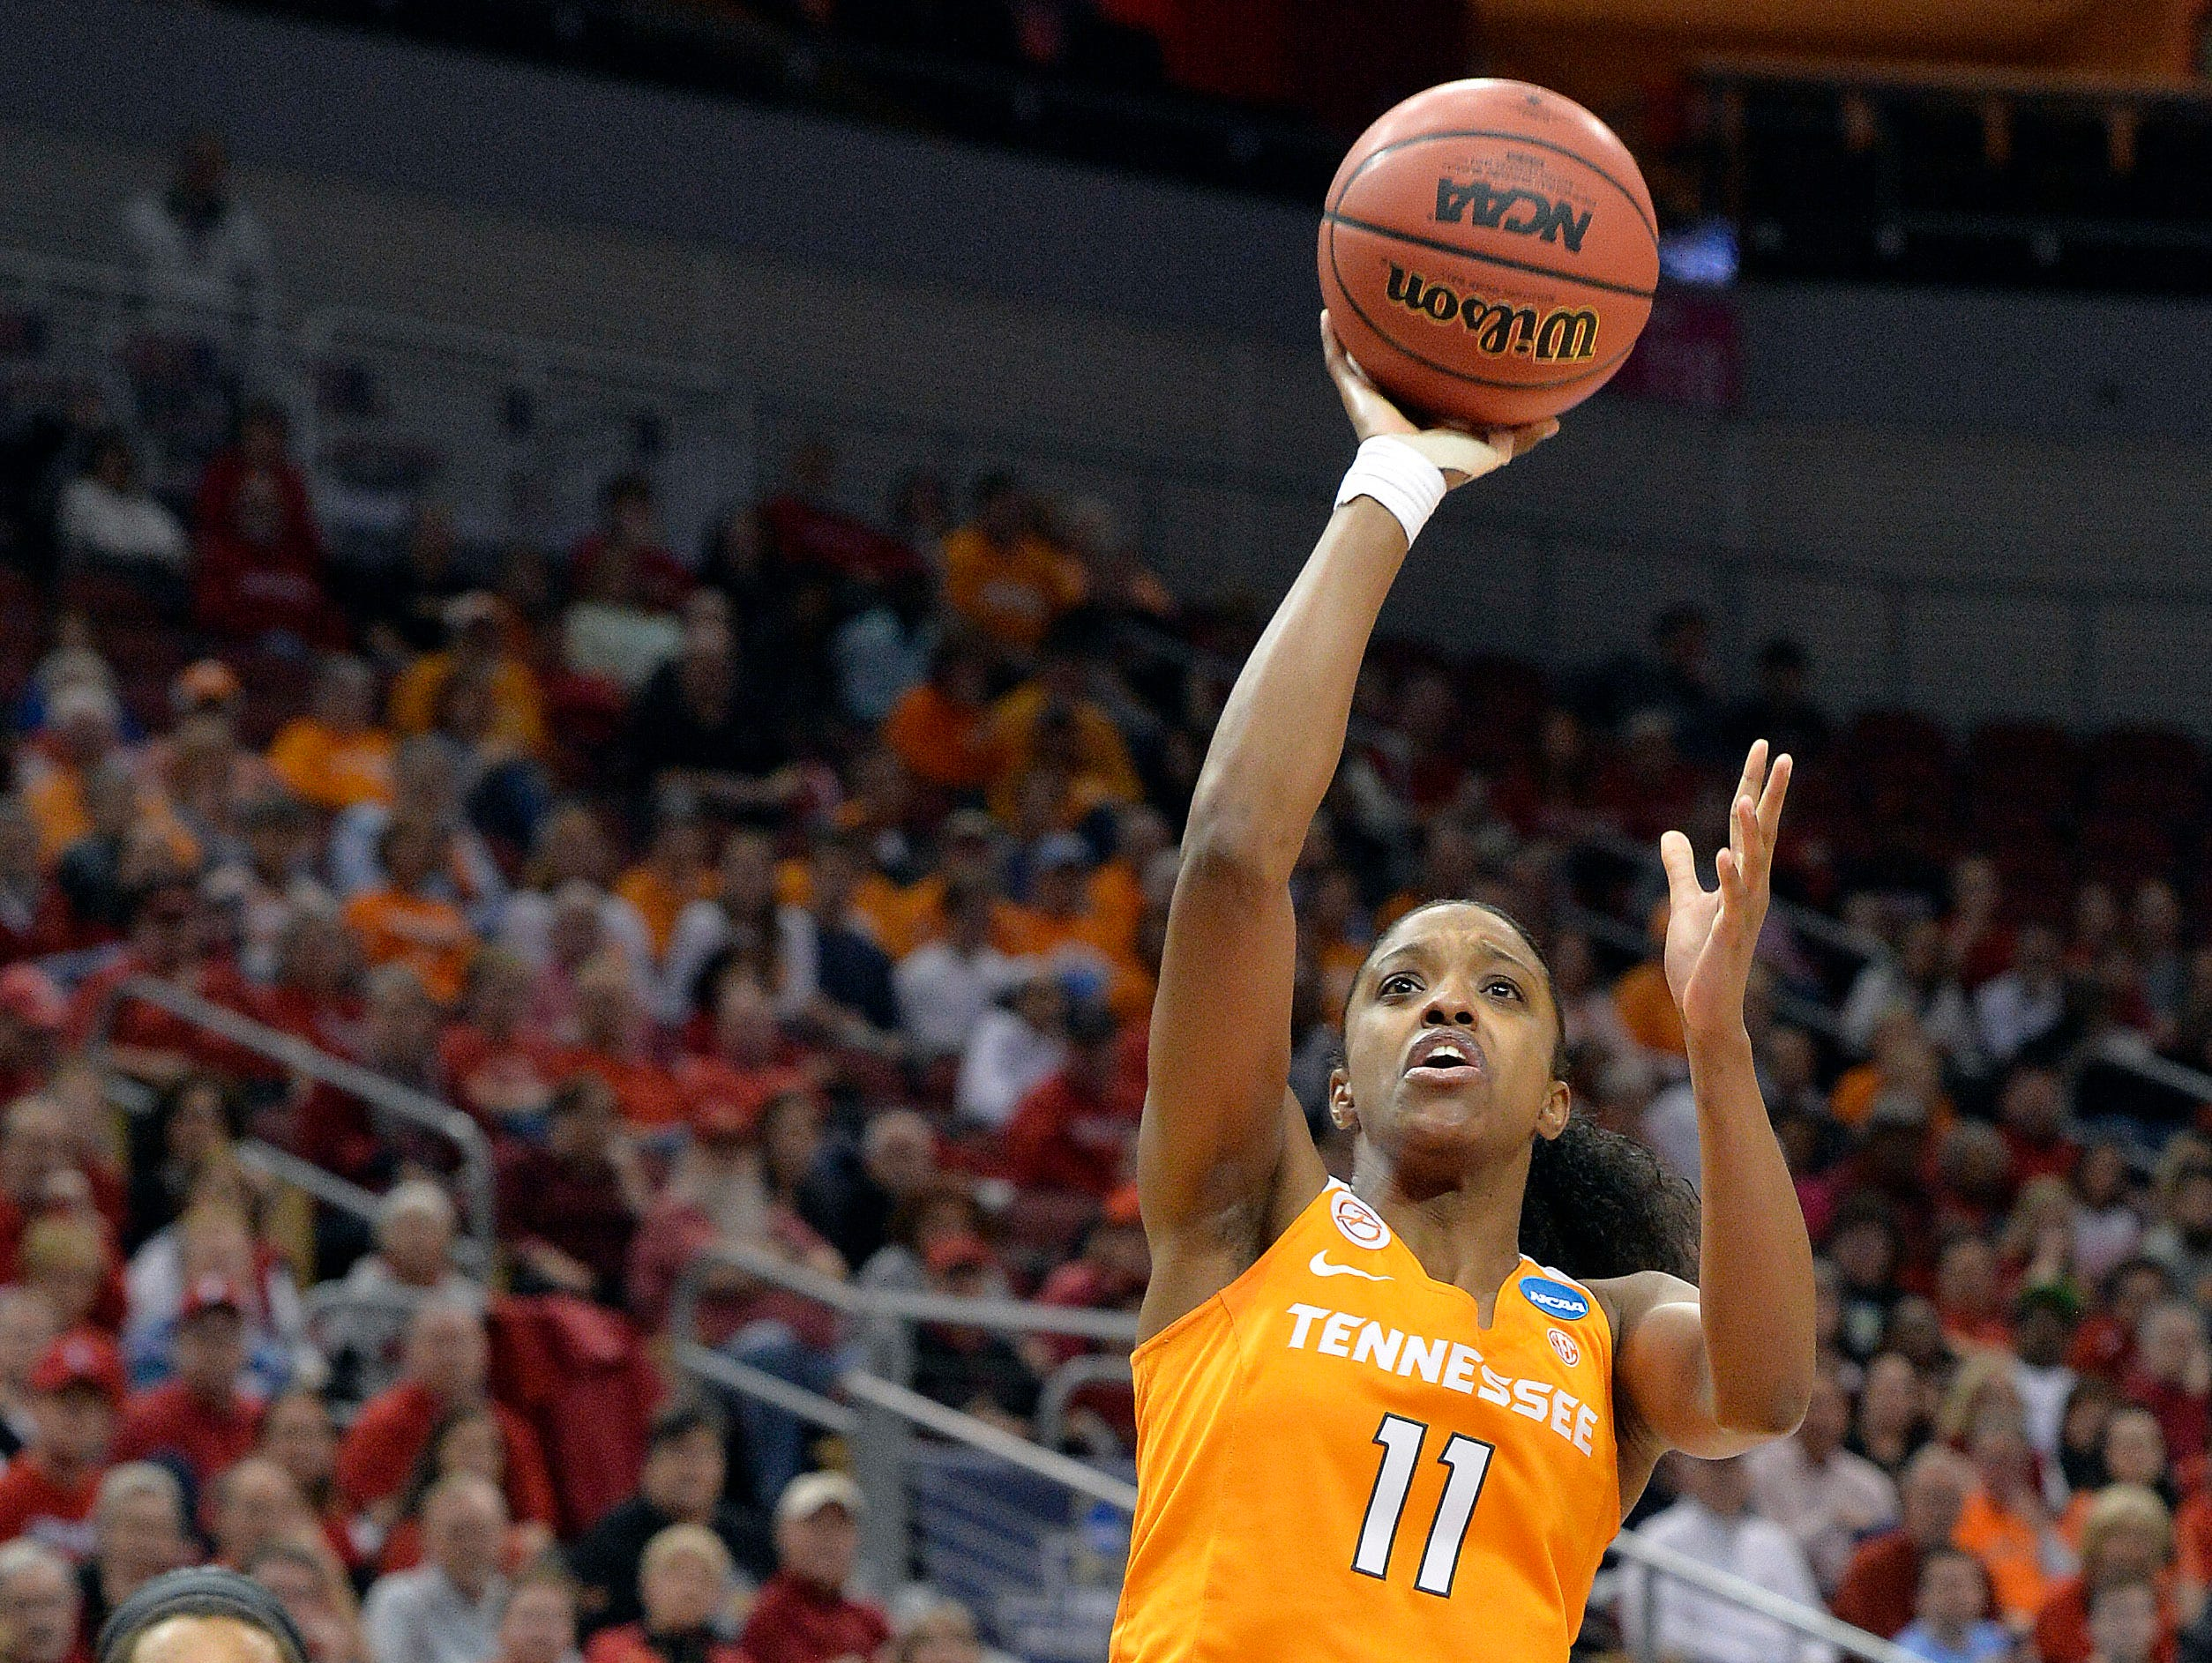 Tennessee's Diamond DeShields charges into Louisville's Myisha Hines-Allen during the first half of Monday's second-round NCAA tournament women's college basketball game in Louisville, Ky.